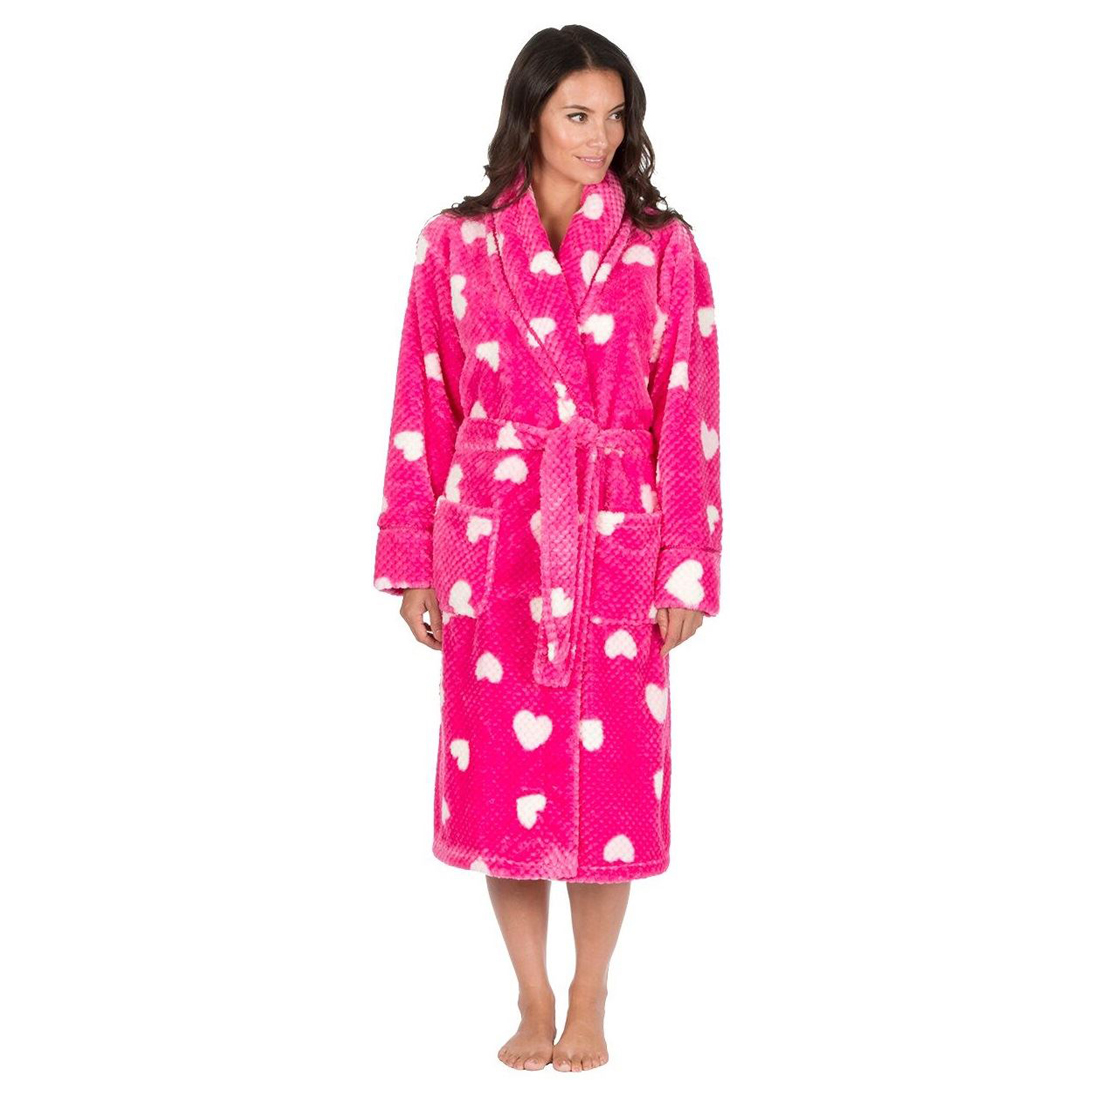 Nice Dark Pink Dressing Gown Gift - Images for wedding gown ideas ...